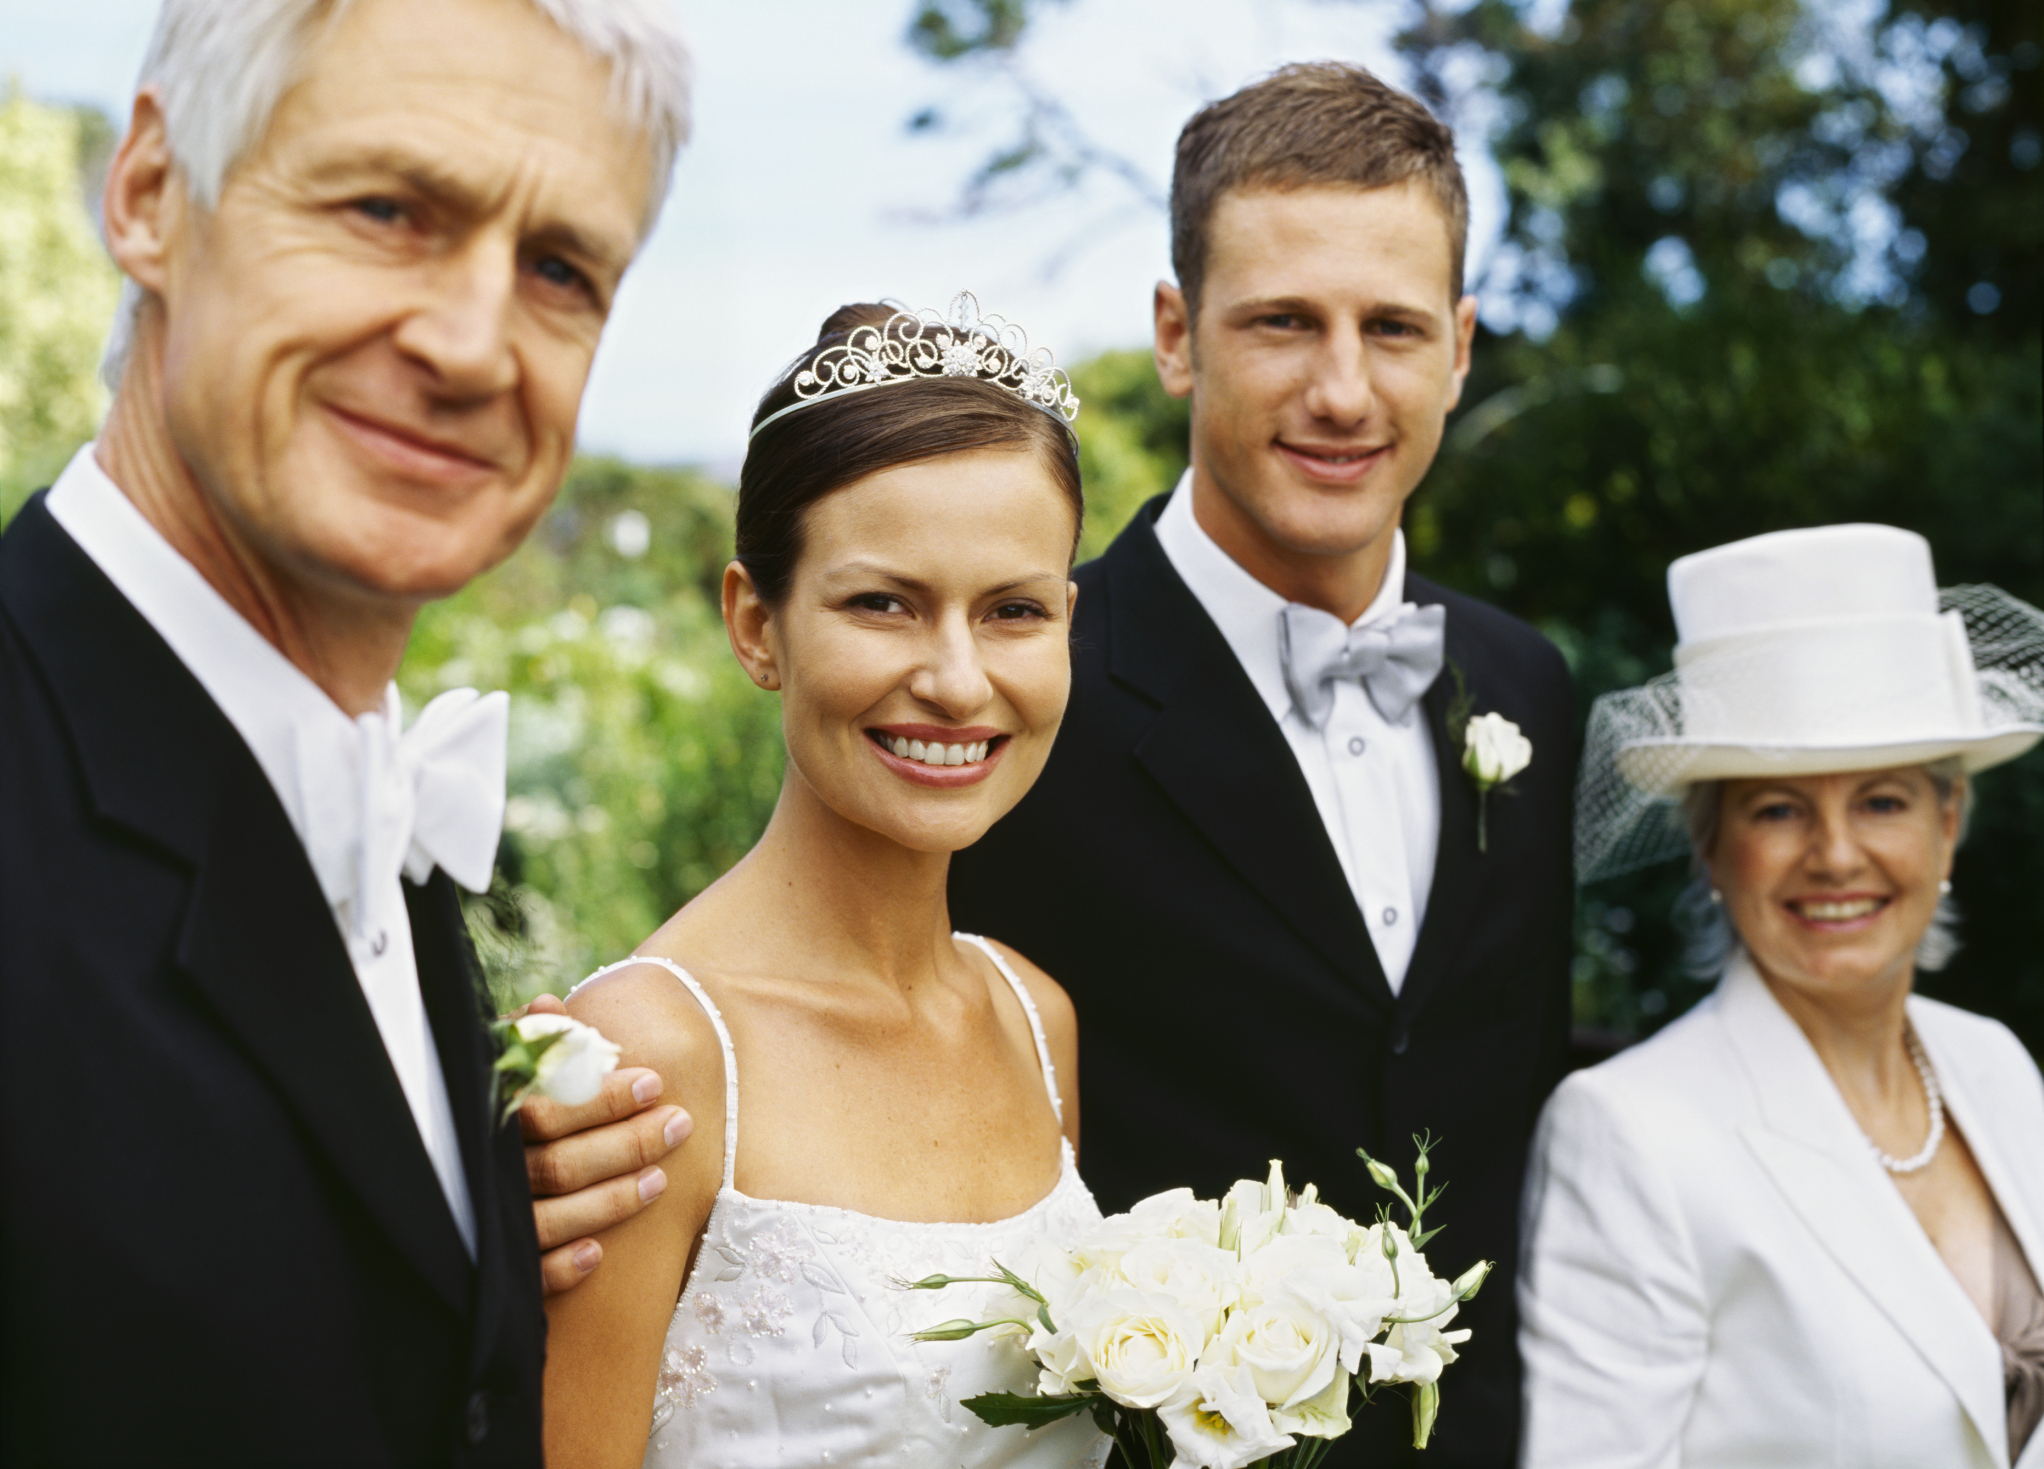 Wedding Etiquette For Groom S Parents: What Are The Duties Of The Father Of The Groom?